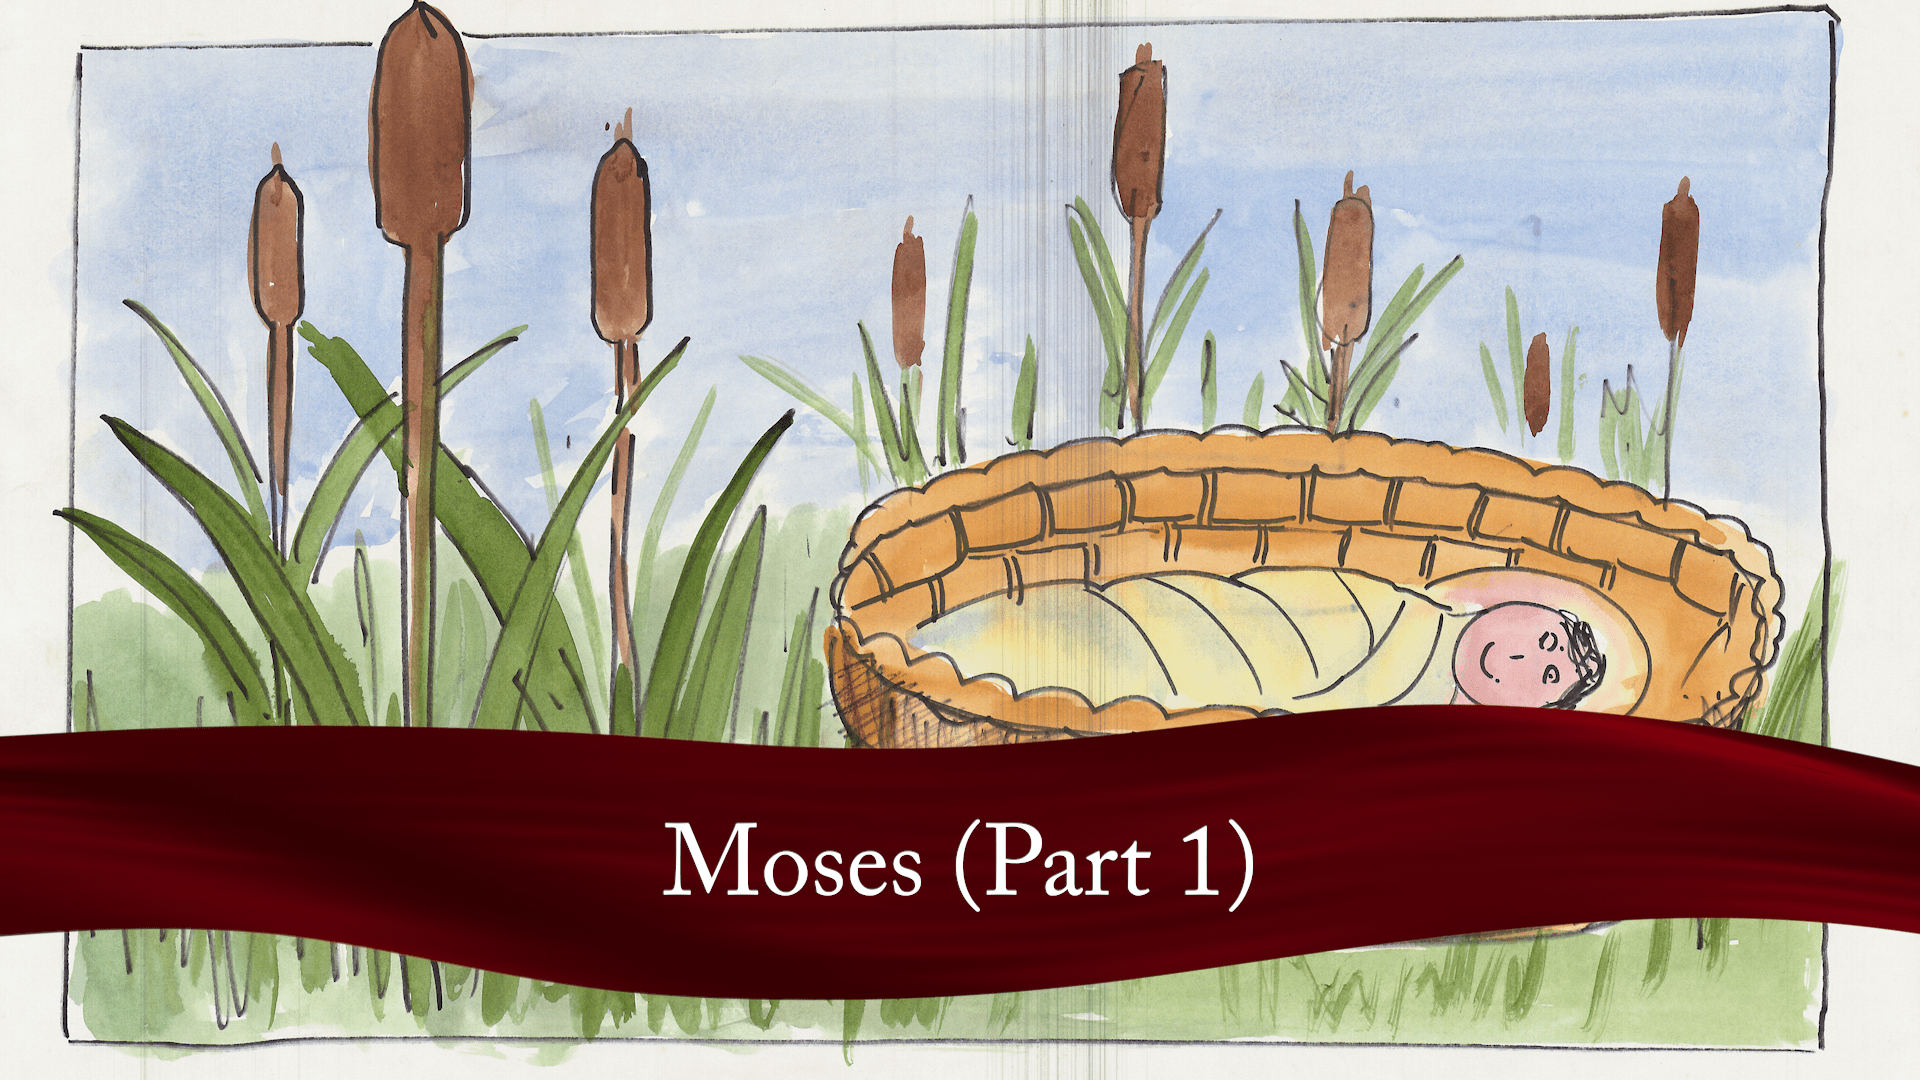 Moses Part 1